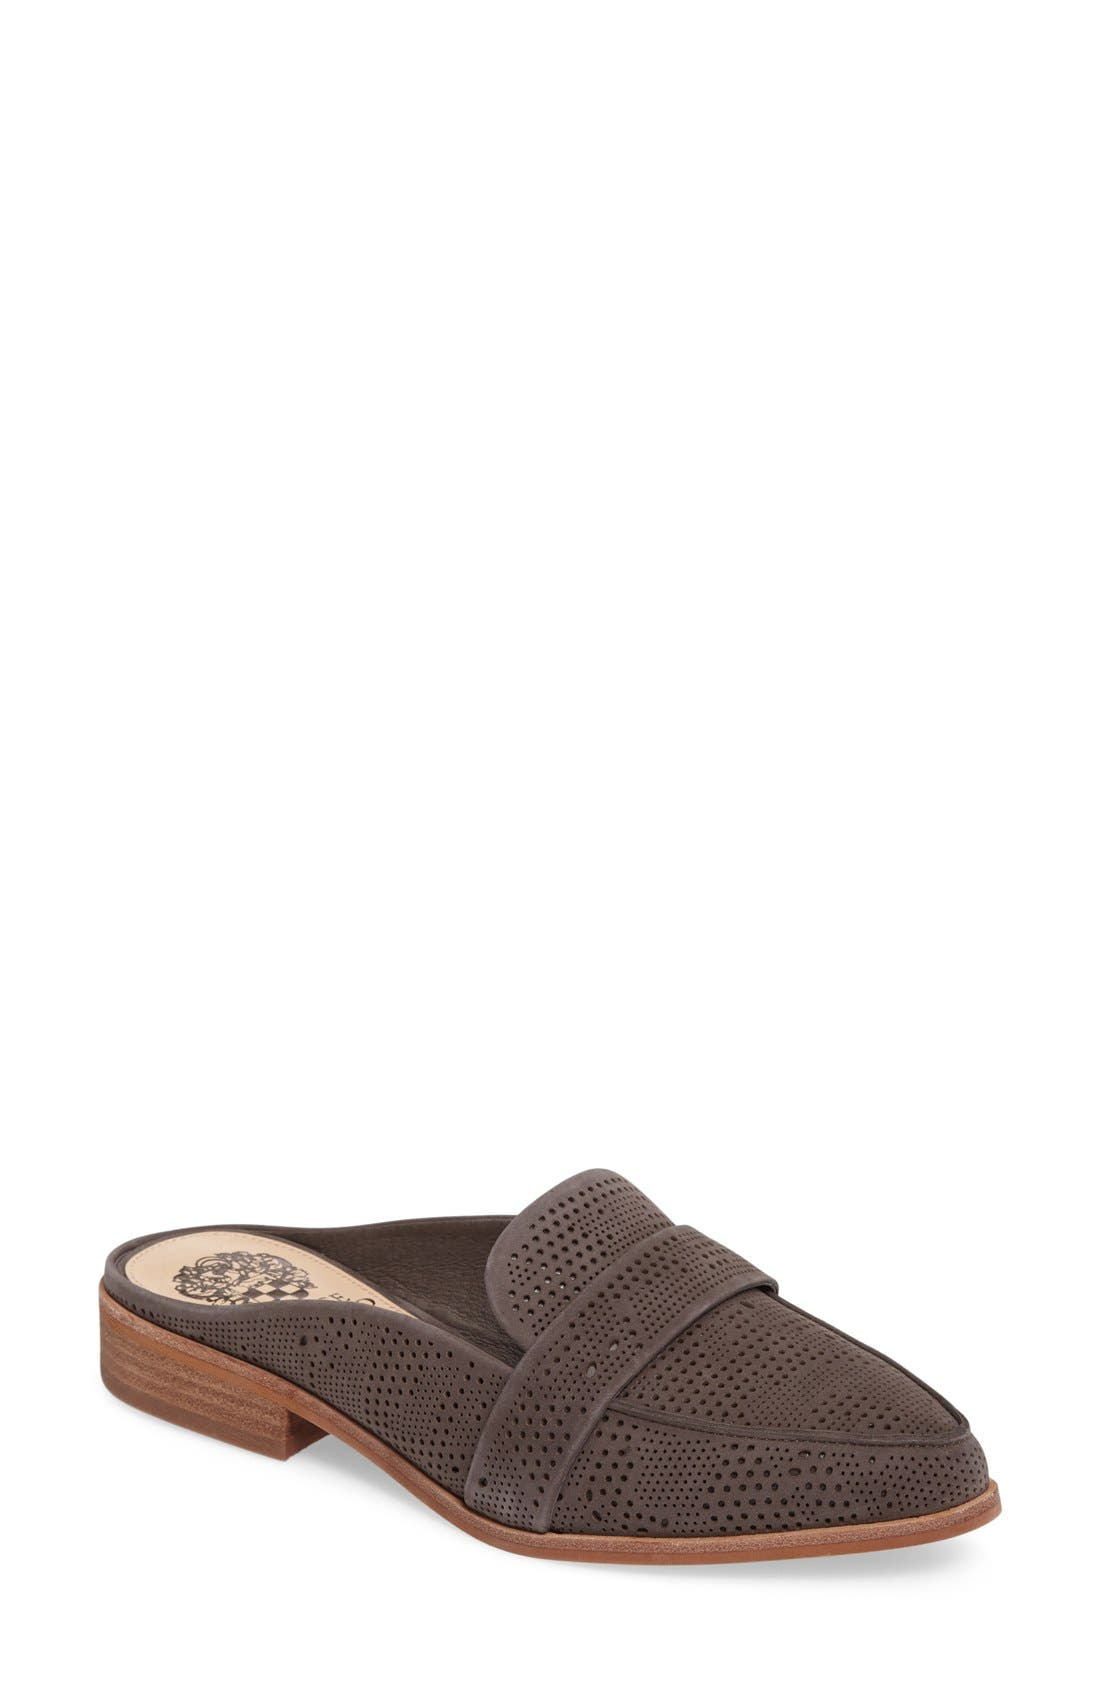 Alternate Image 1 Selected - Vince Camuto Kaylana Loafer Mule (Women) (Nordstrom Exclusive)